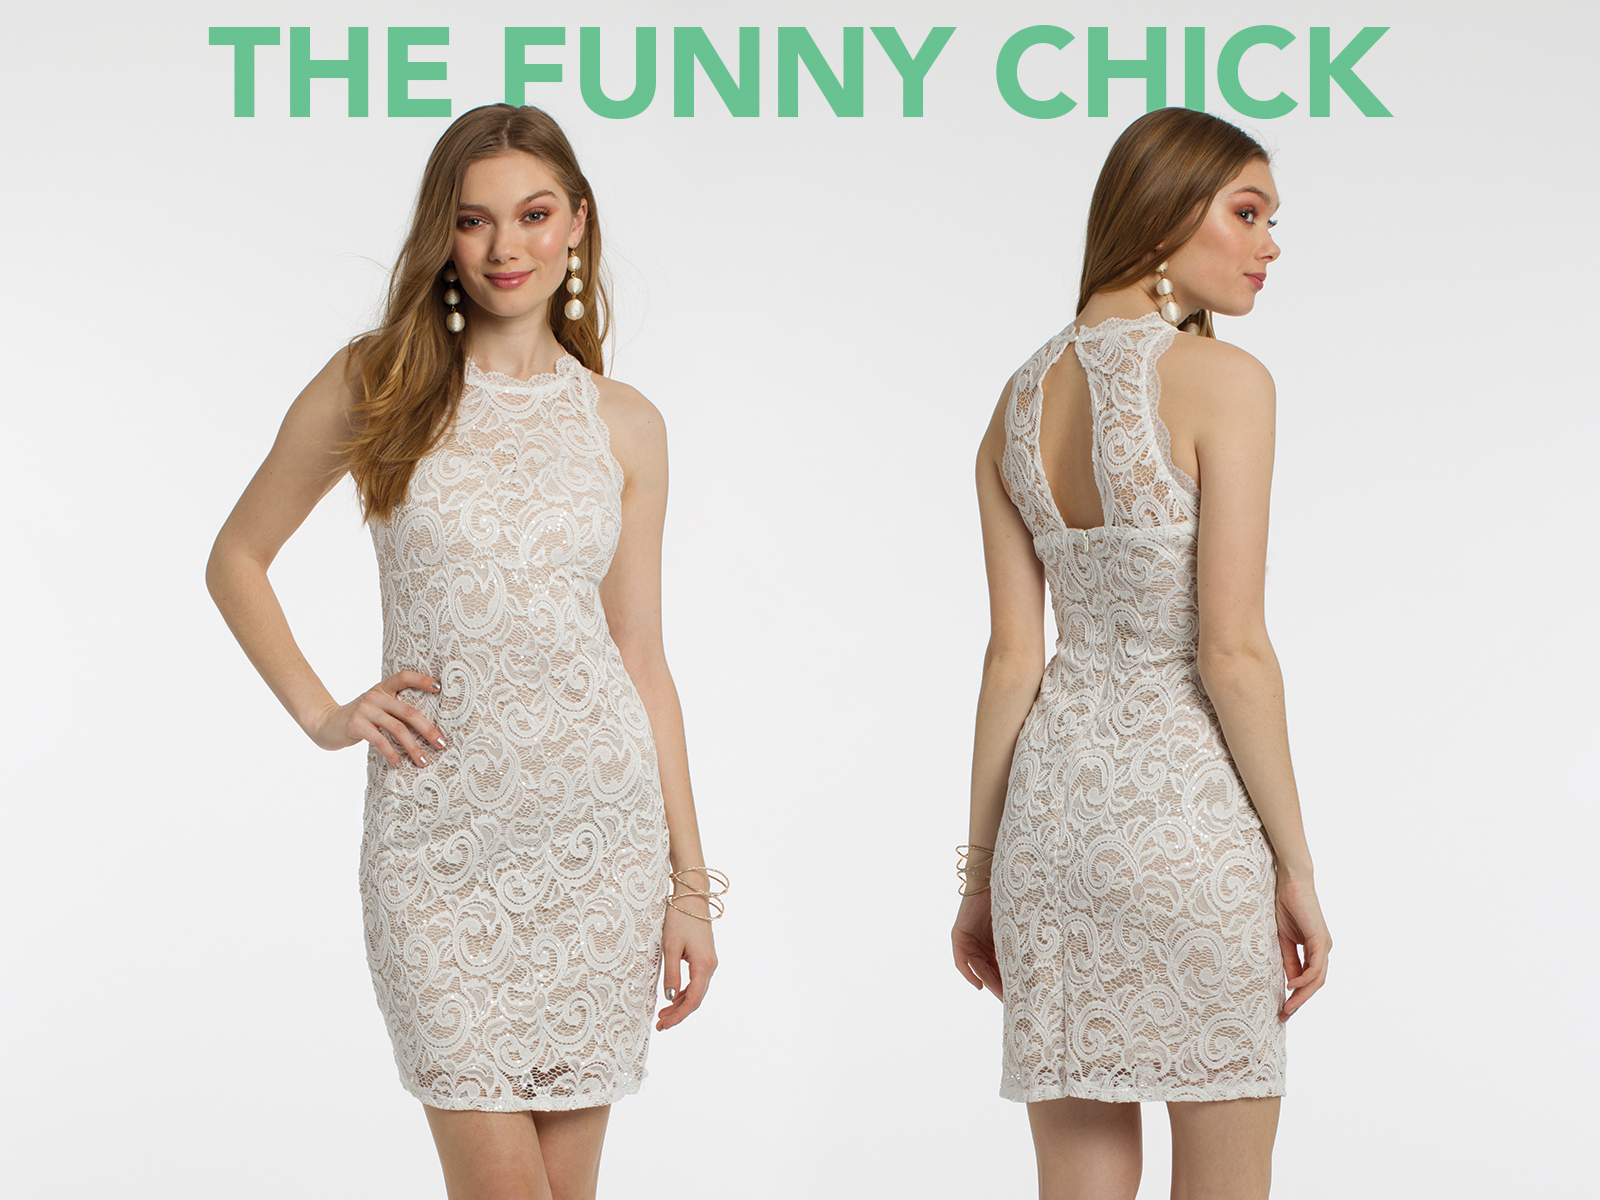 The Funny Chick